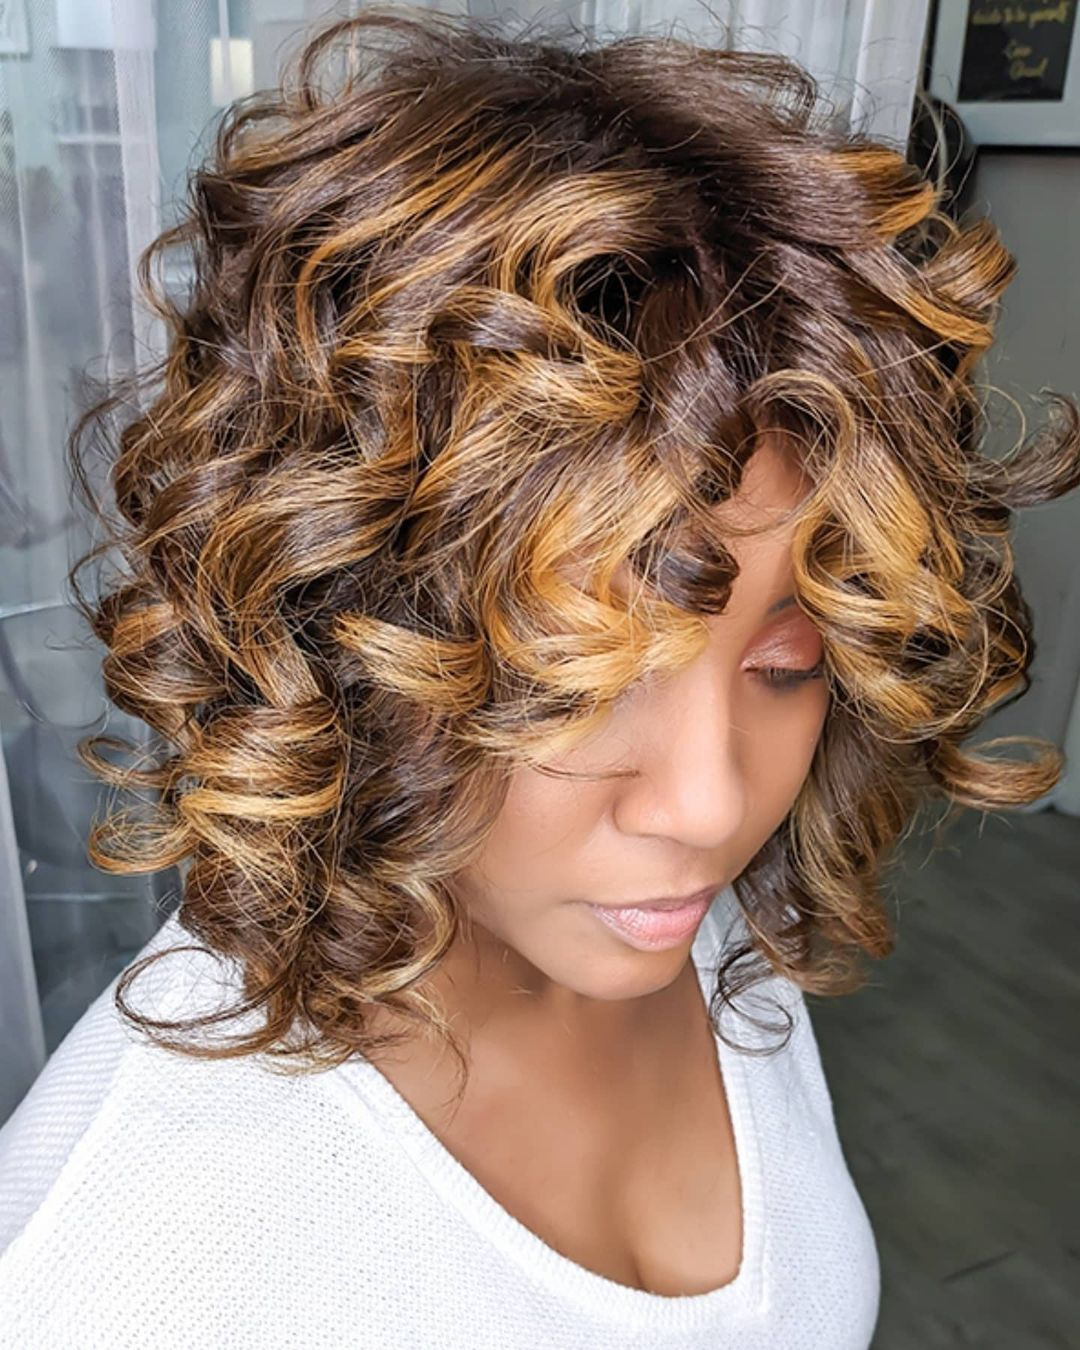 How to Make Naturally Curly Hair Shiny